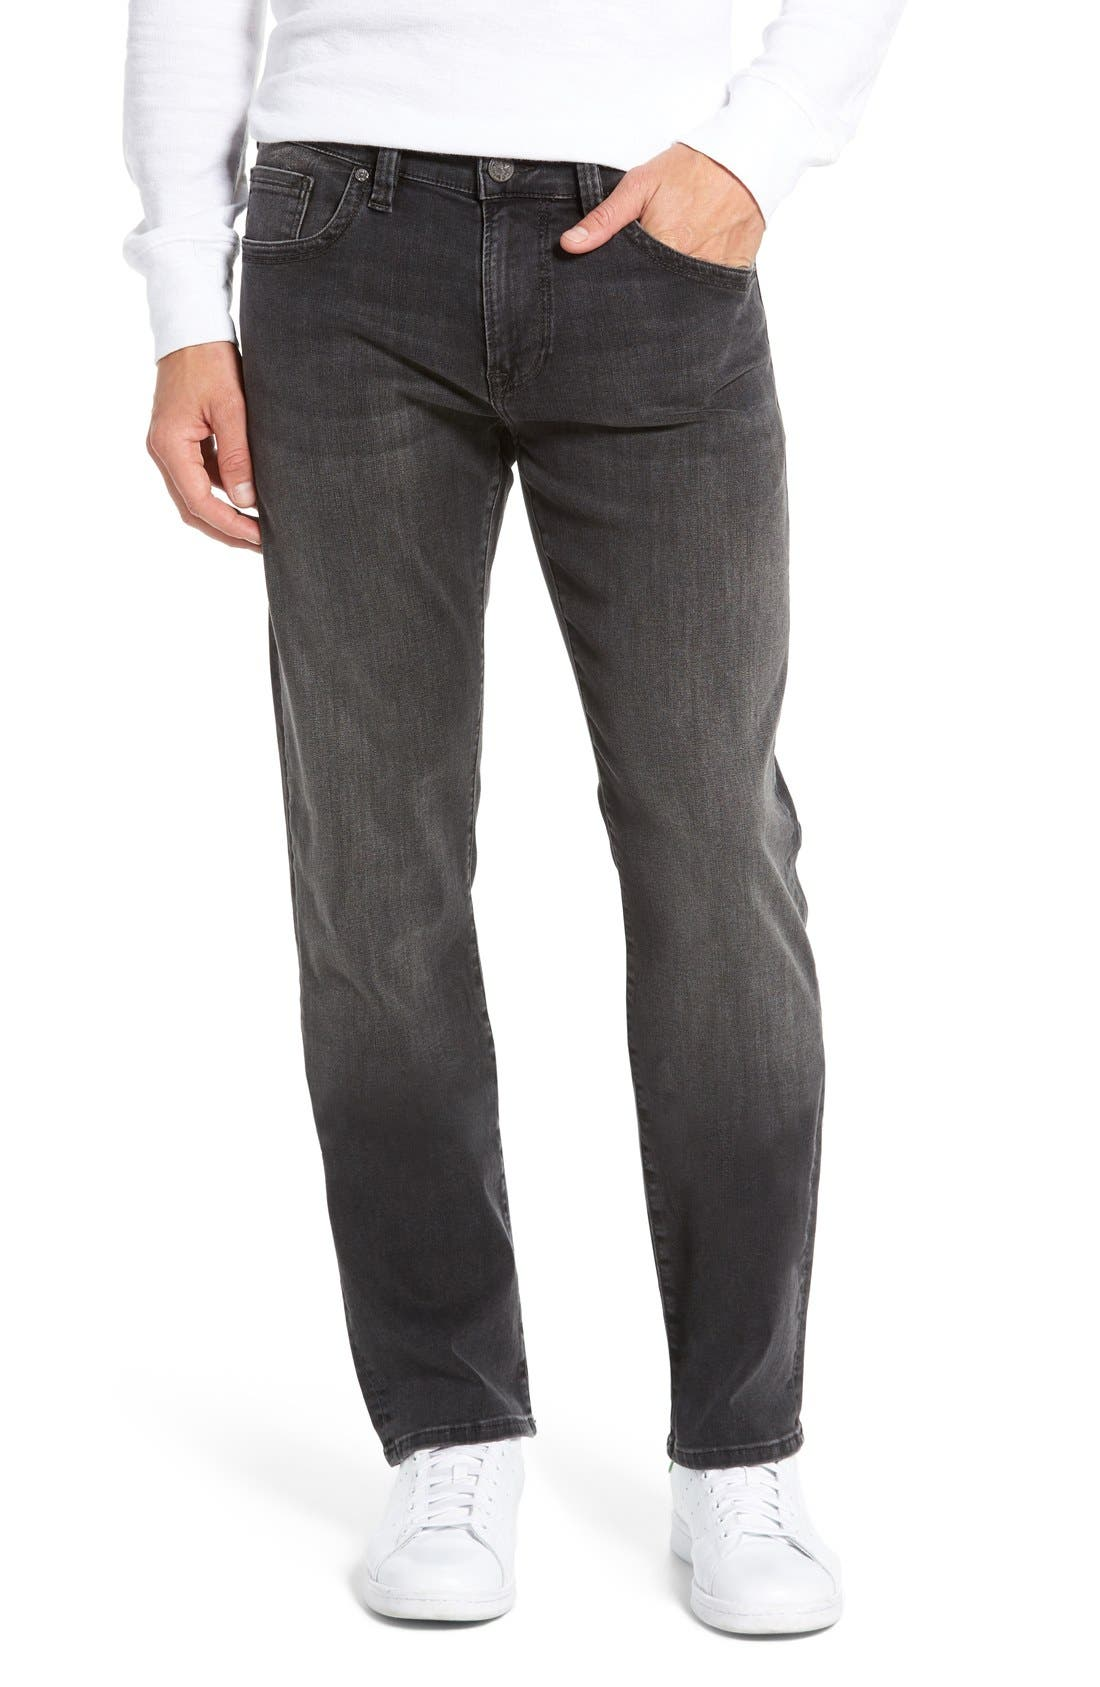 'Courage' Straight Leg Jeans,                         Main,                         color, Courage Coal Soft